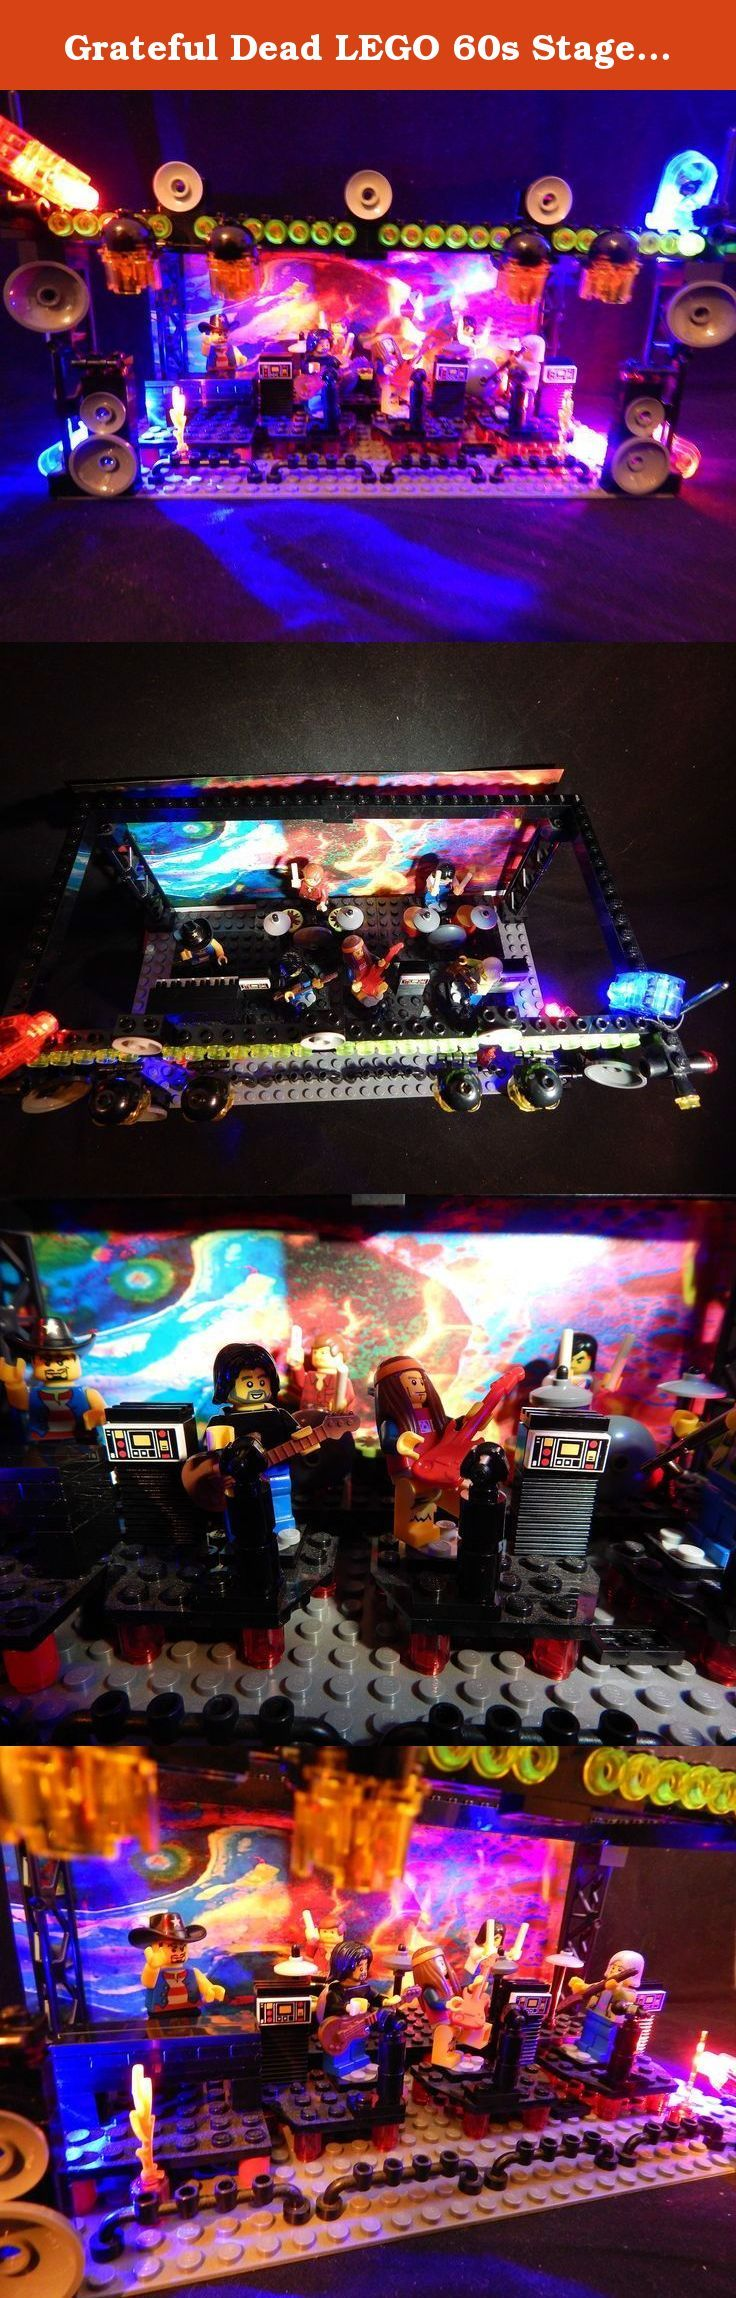 Grateful Dead LEGO 60s Stage Jerry Garcia Pigpen Bob Weir Phil Lesh JGB Not a t Shirt or Pin See all our LEGOS Steal Your Face. LEGO GRATEFUL DEAD STAGE FOR SERIOUS COLLECTORS and BUILDERS! WHAT A GIFT! Buy from GD Family! This set is no joke! It offers OVER 200 PIECES! Here are some of it's components: > 200+ Official Lego Pieces. We source these parts from all over the world and they are hard to get so please don't complain about the price! > 3 Amps > 3 Adjustable Mic Stands > Sturdy...